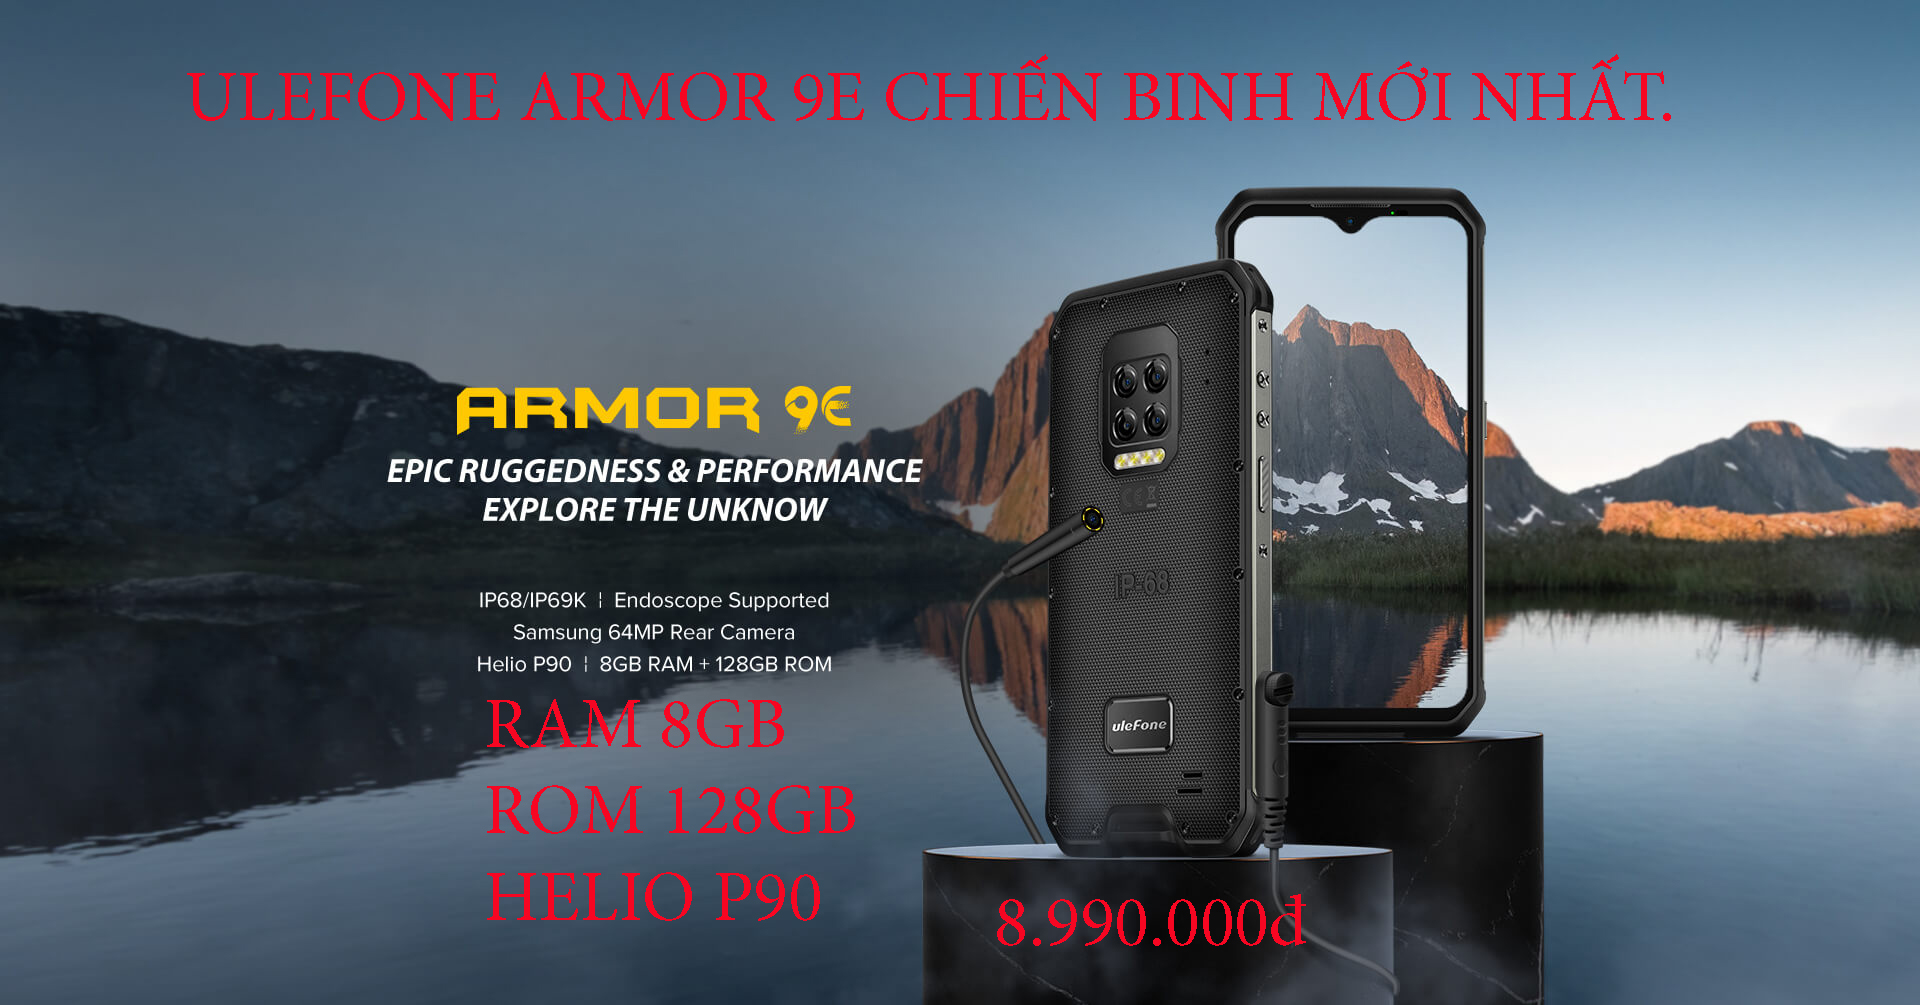 http://www.ulefonepower.com/products/0-ulefone-amor-7-chip-helio-p90-ai-2-2ghz-ram-8-gb-rom-128-gb-pin-5-500mah-chong-nuoc-ip69